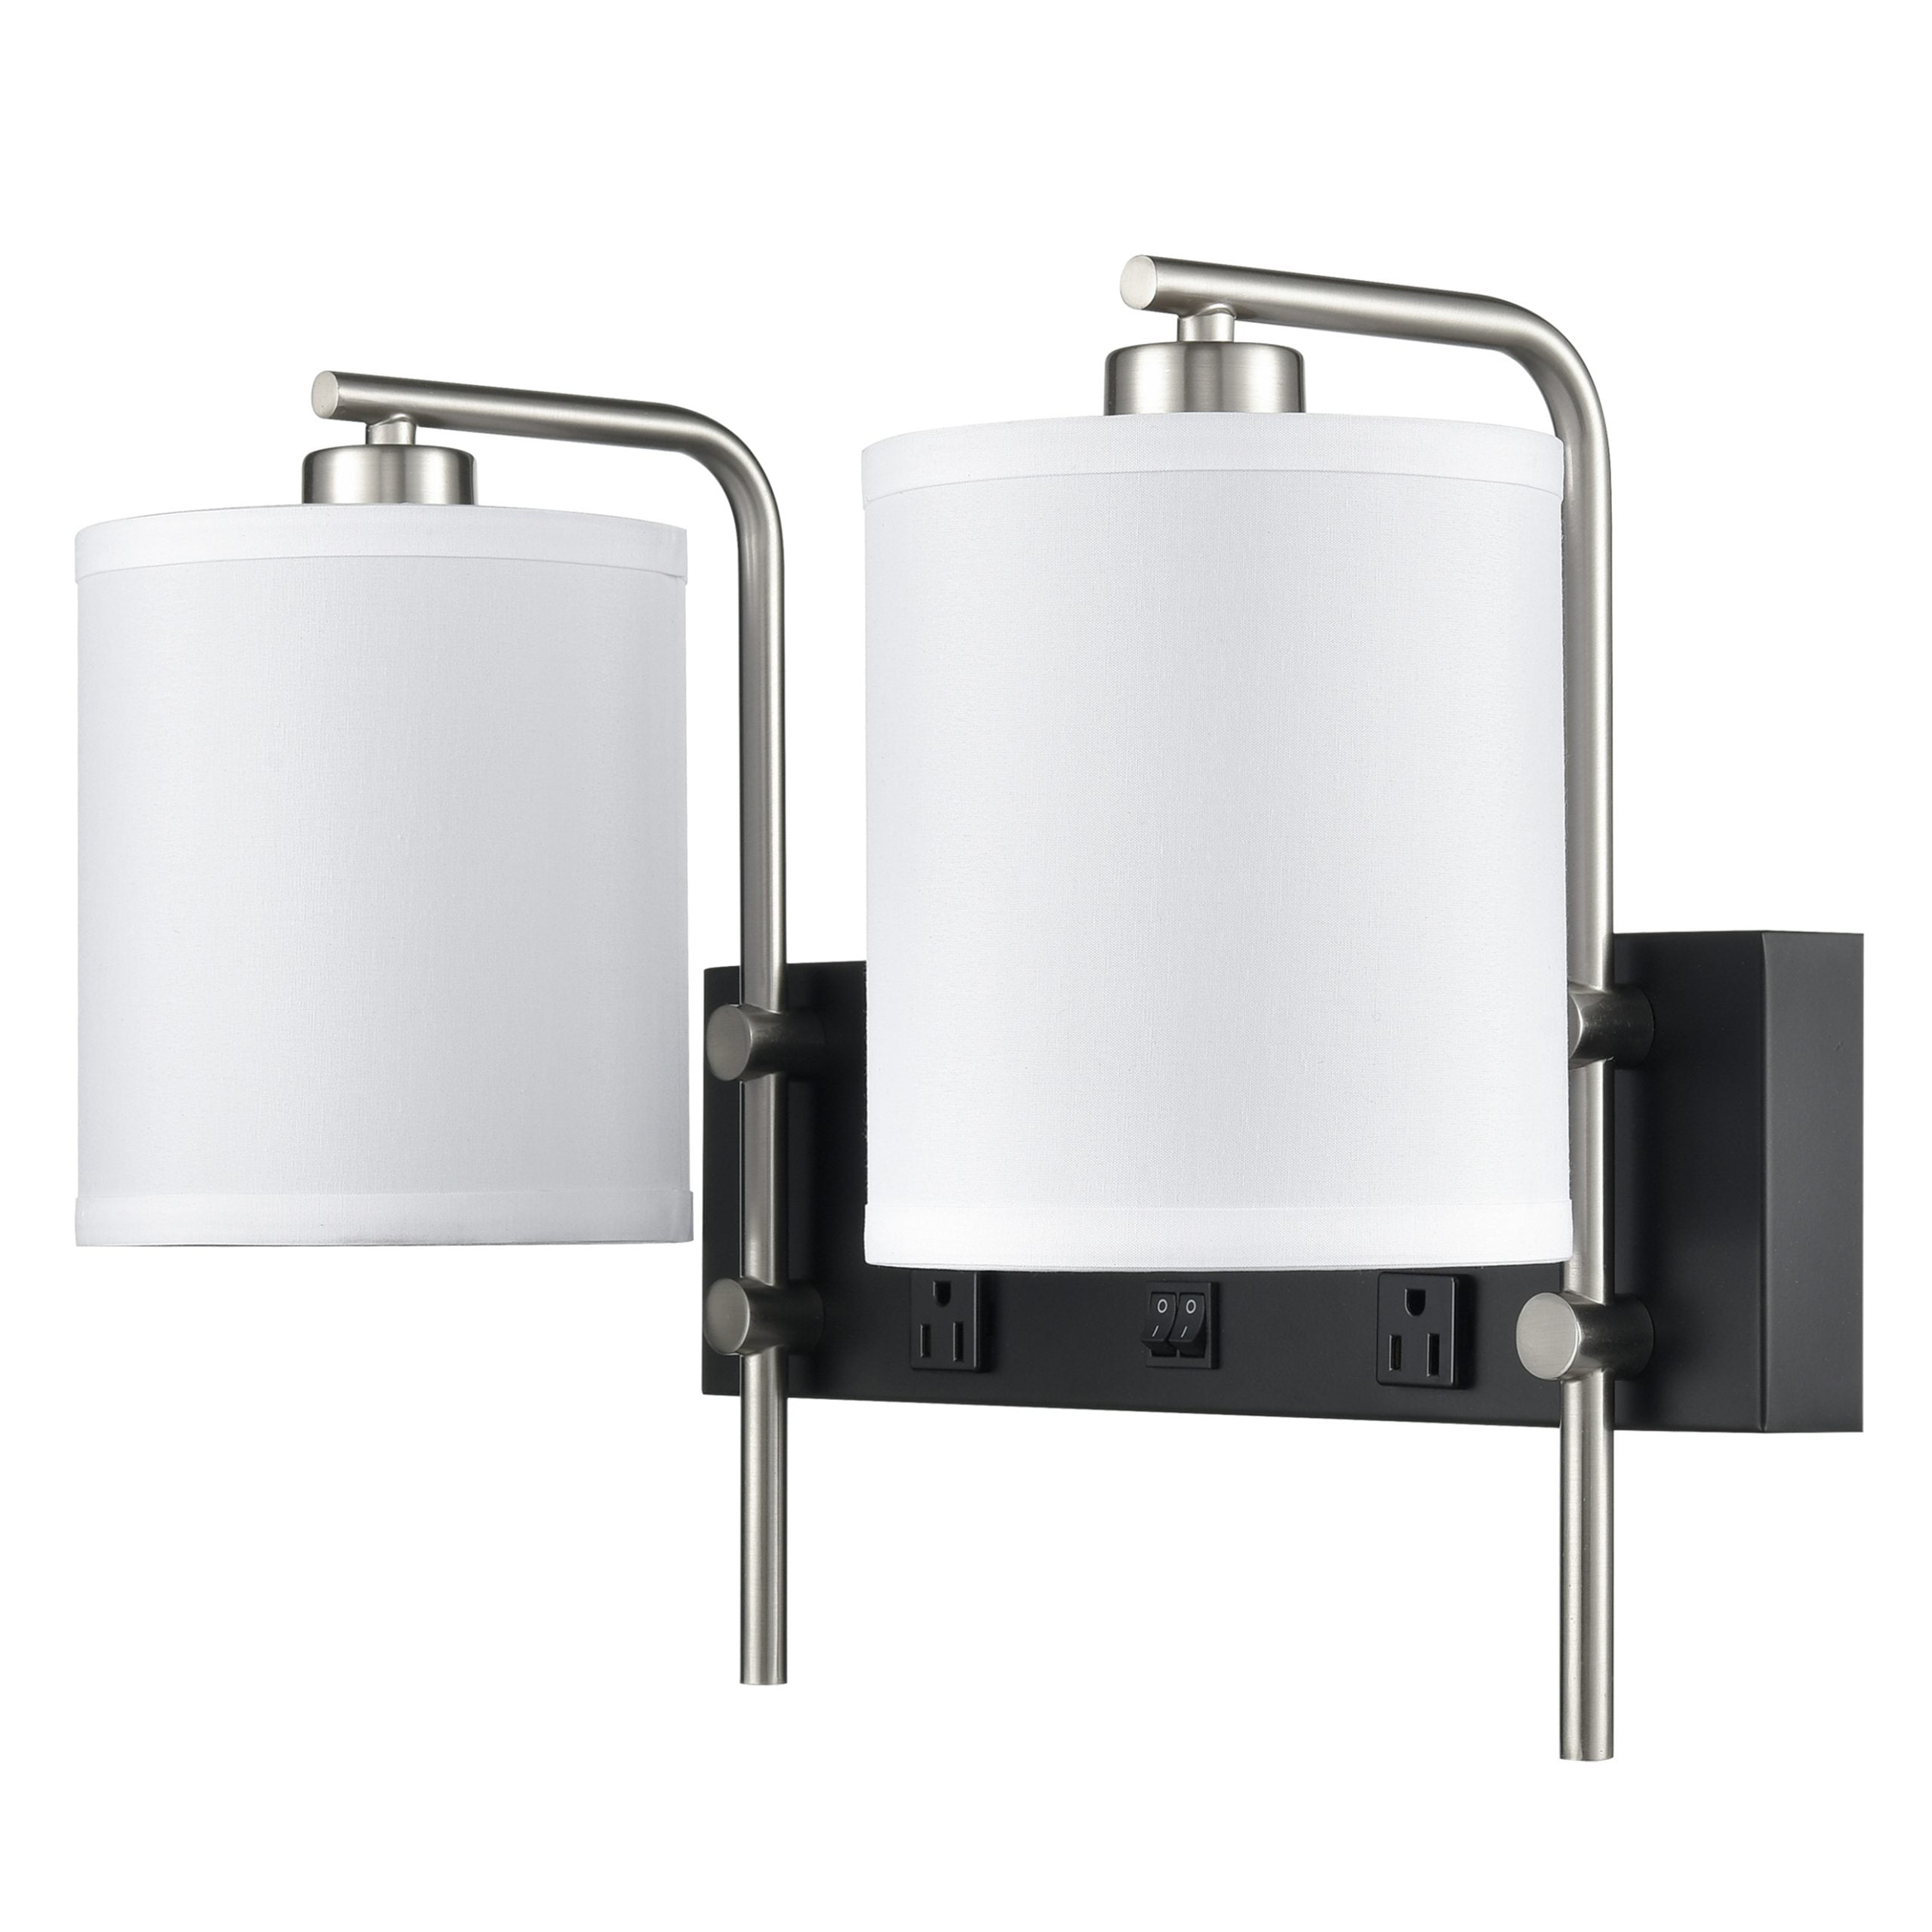 Valeria Double Wall Lamp with 2 Outlets